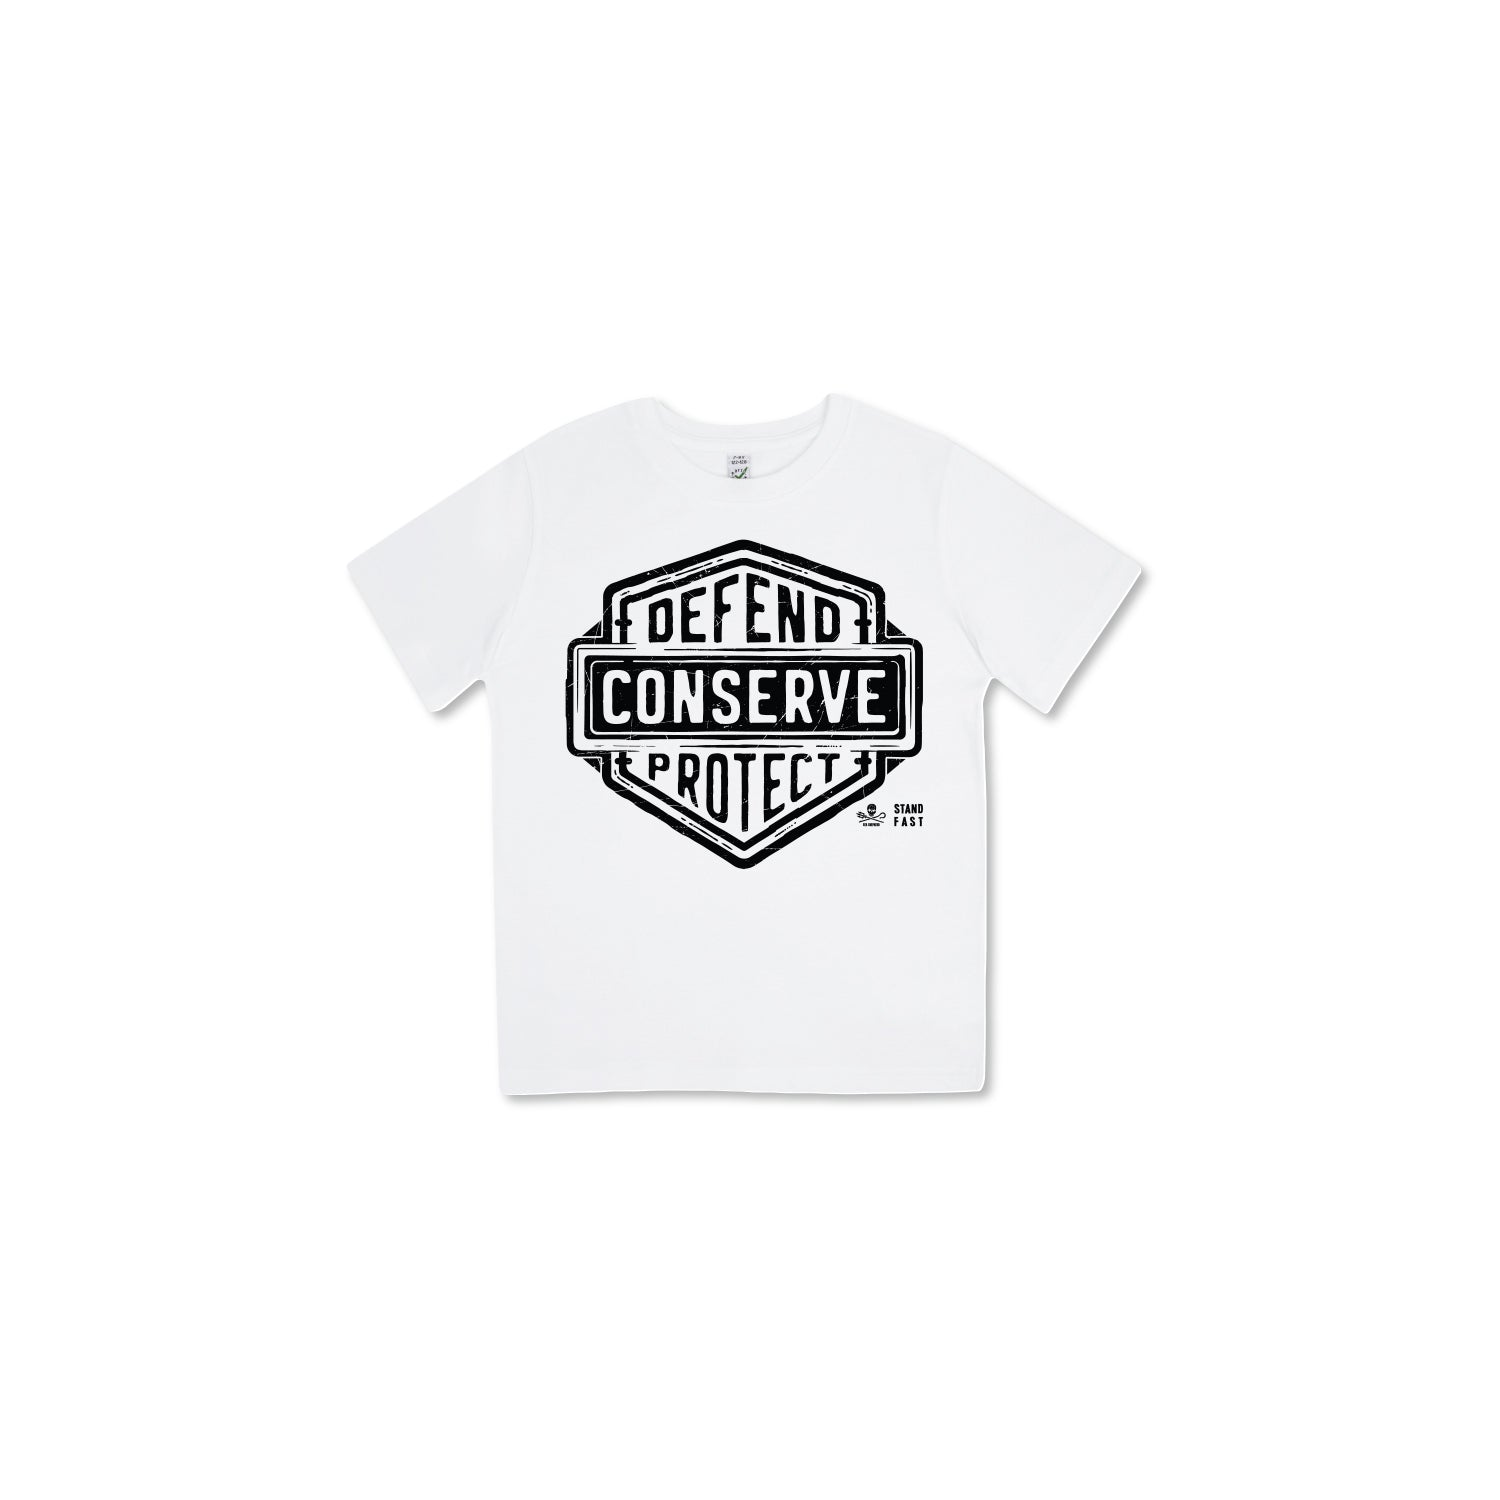 Sea Shepherd Stand Fast - Defend Conserve Protect Forever 100% Organic Cotton Kids - White Tee